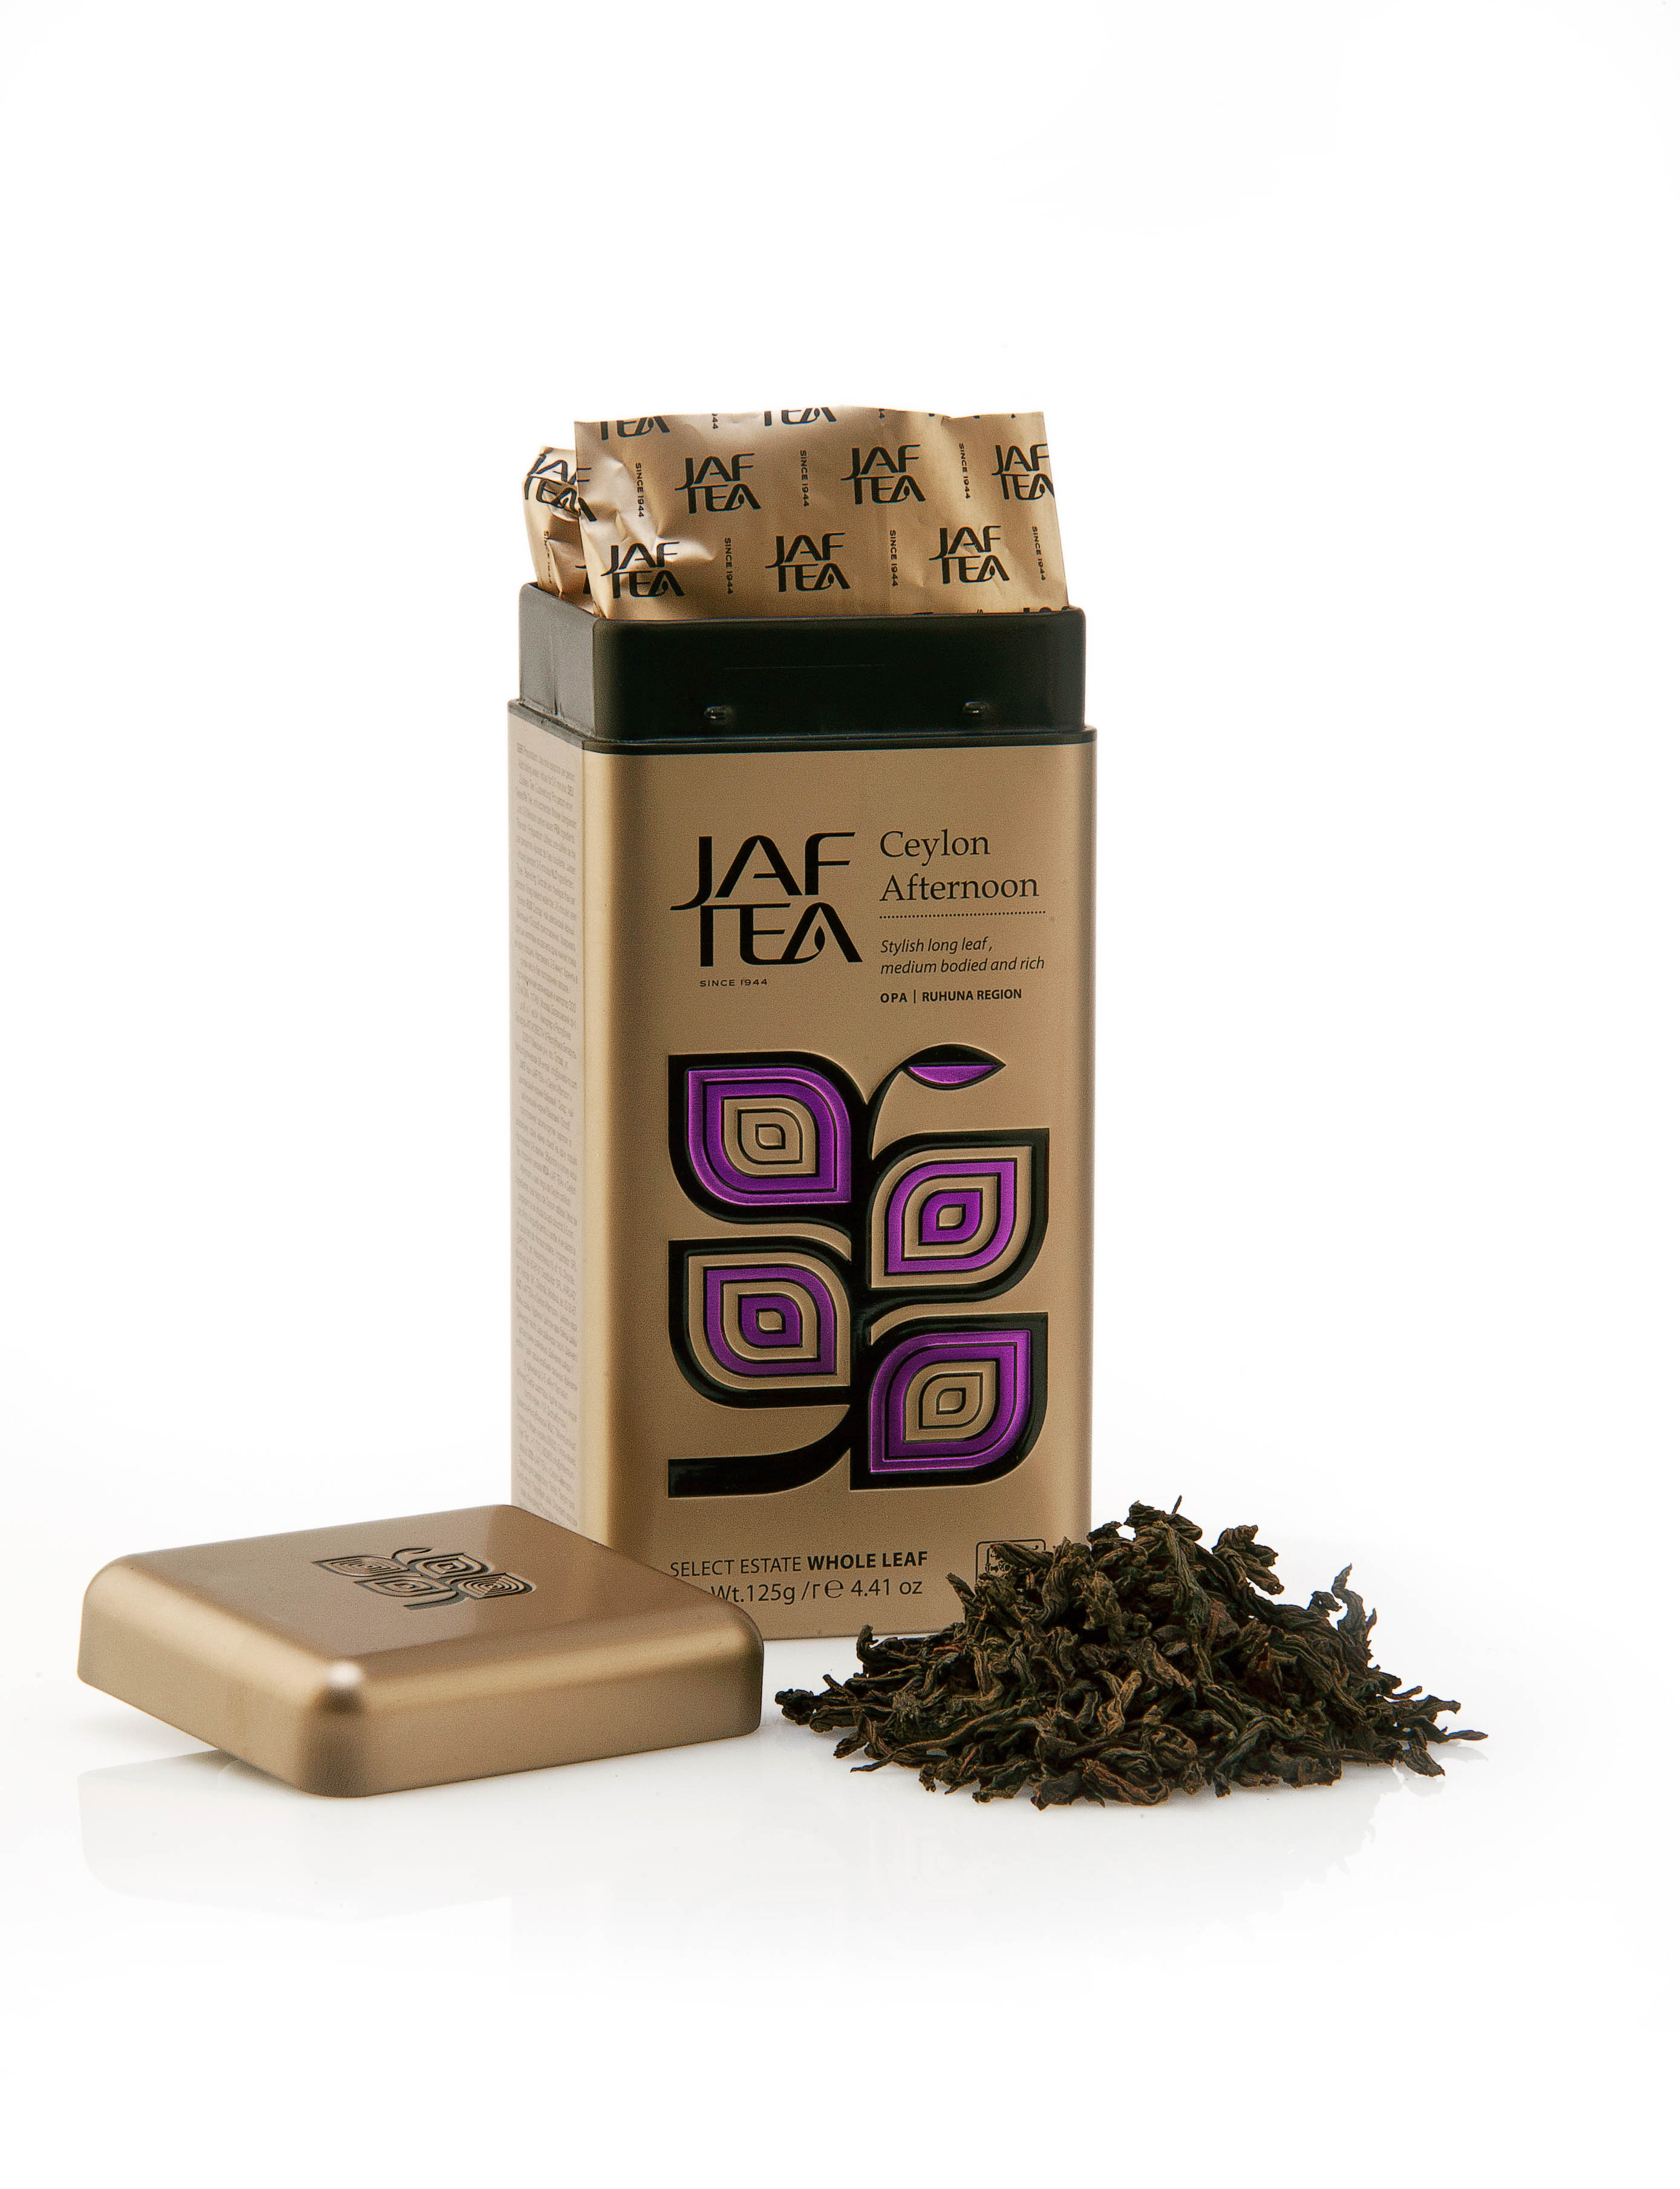 Tea Product Photography